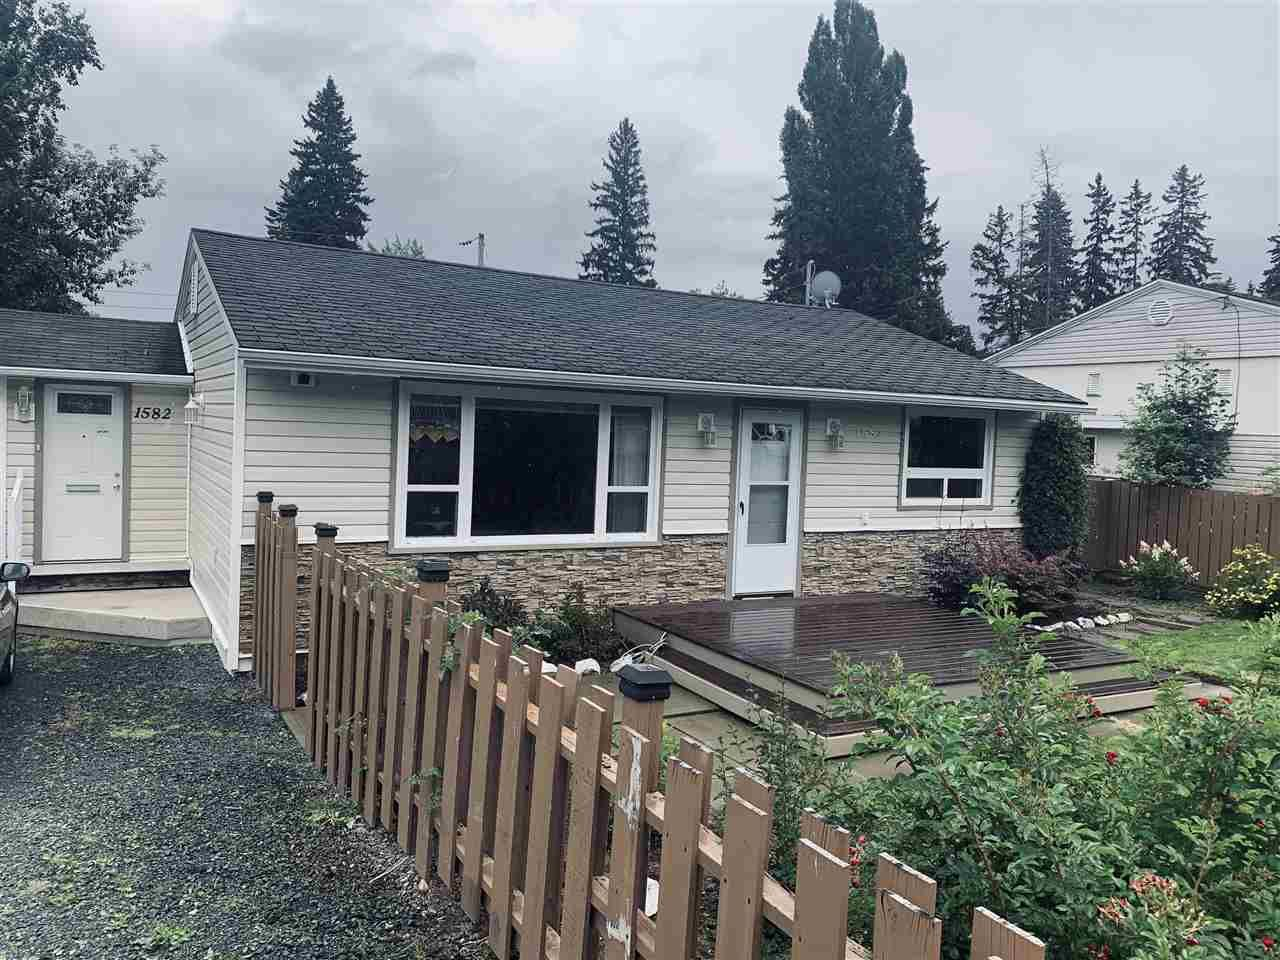 Main Photo: 1582 INGLEDEW Street in Prince George: Millar Addition House for sale (PG City Central (Zone 72))  : MLS®# R2490728